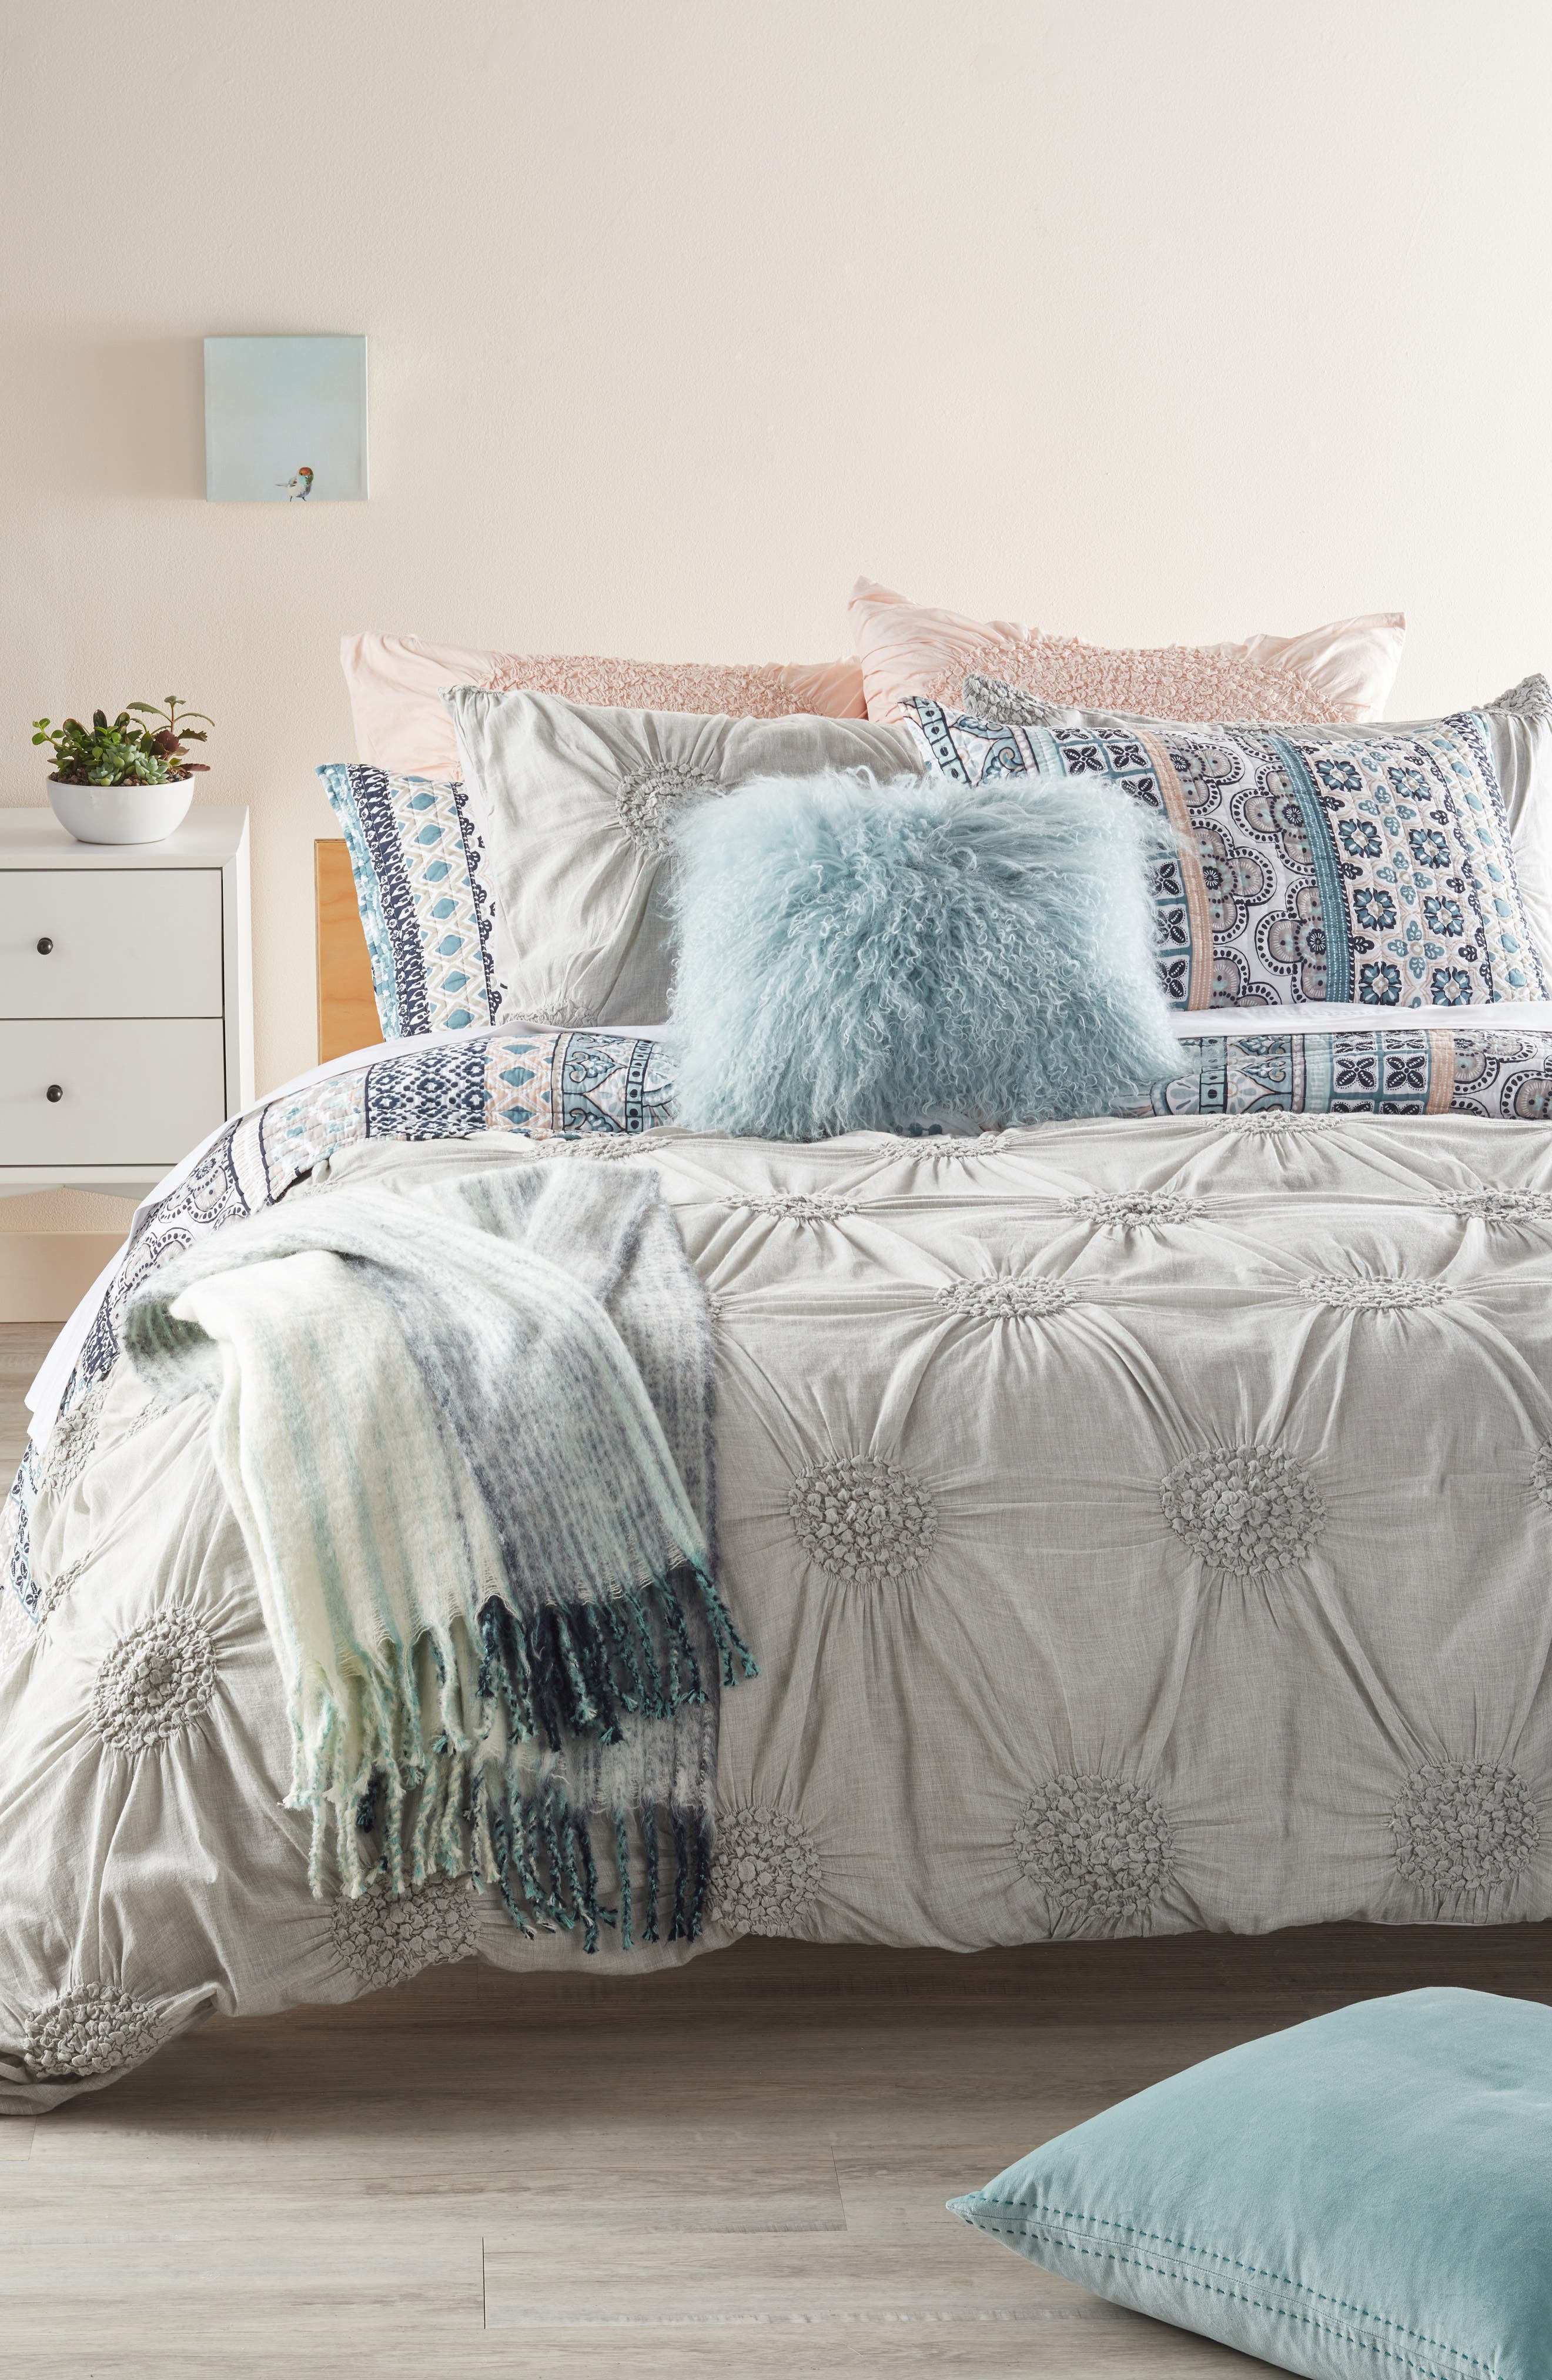 Nordstrom at Home Chloe & Levtex Addie Quilt Bedding Collection